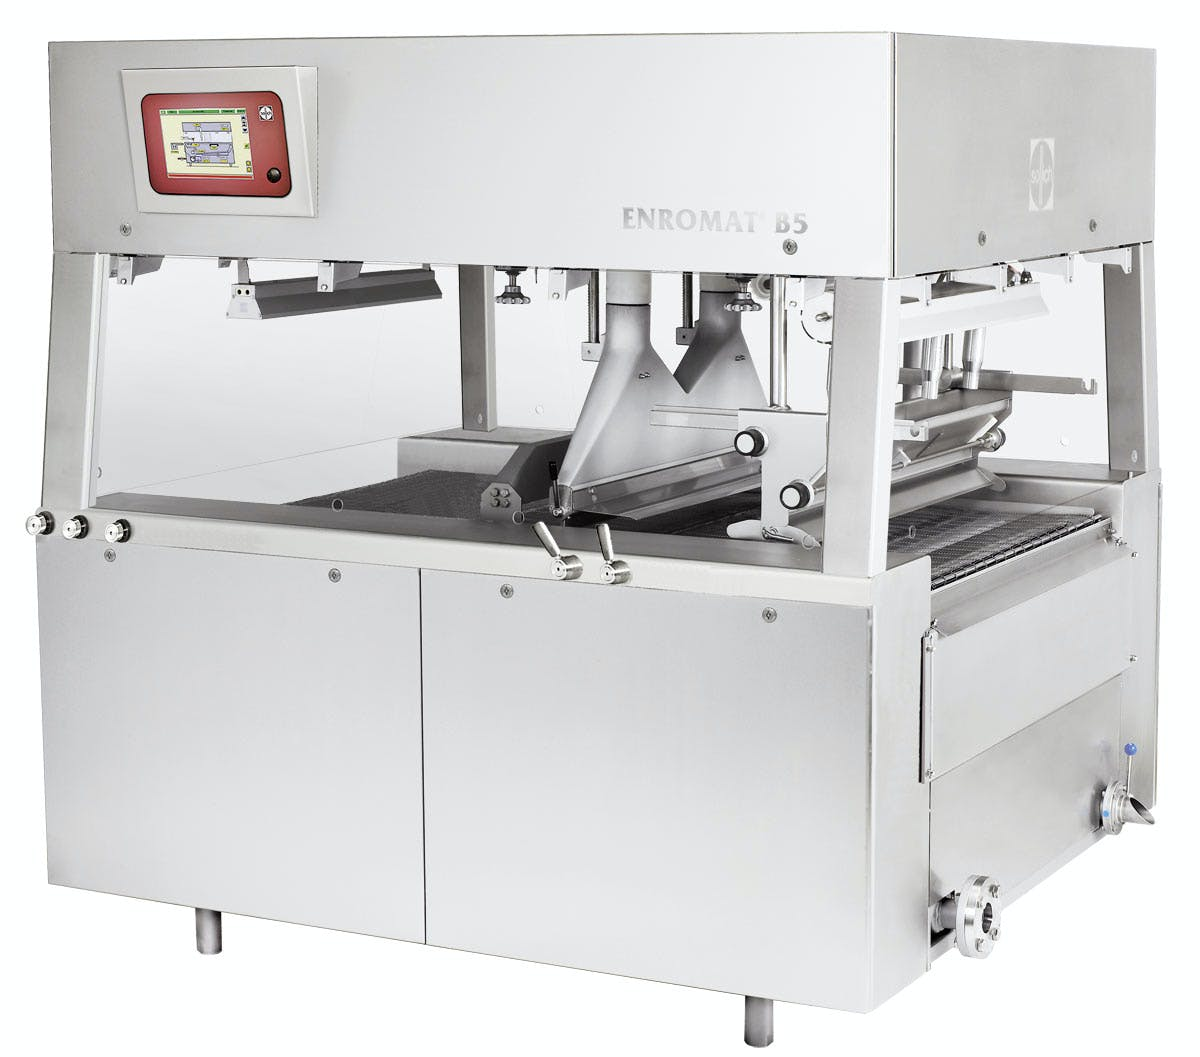 Sollich Enromat B5 Chocolate enrober sold by Sollich North America